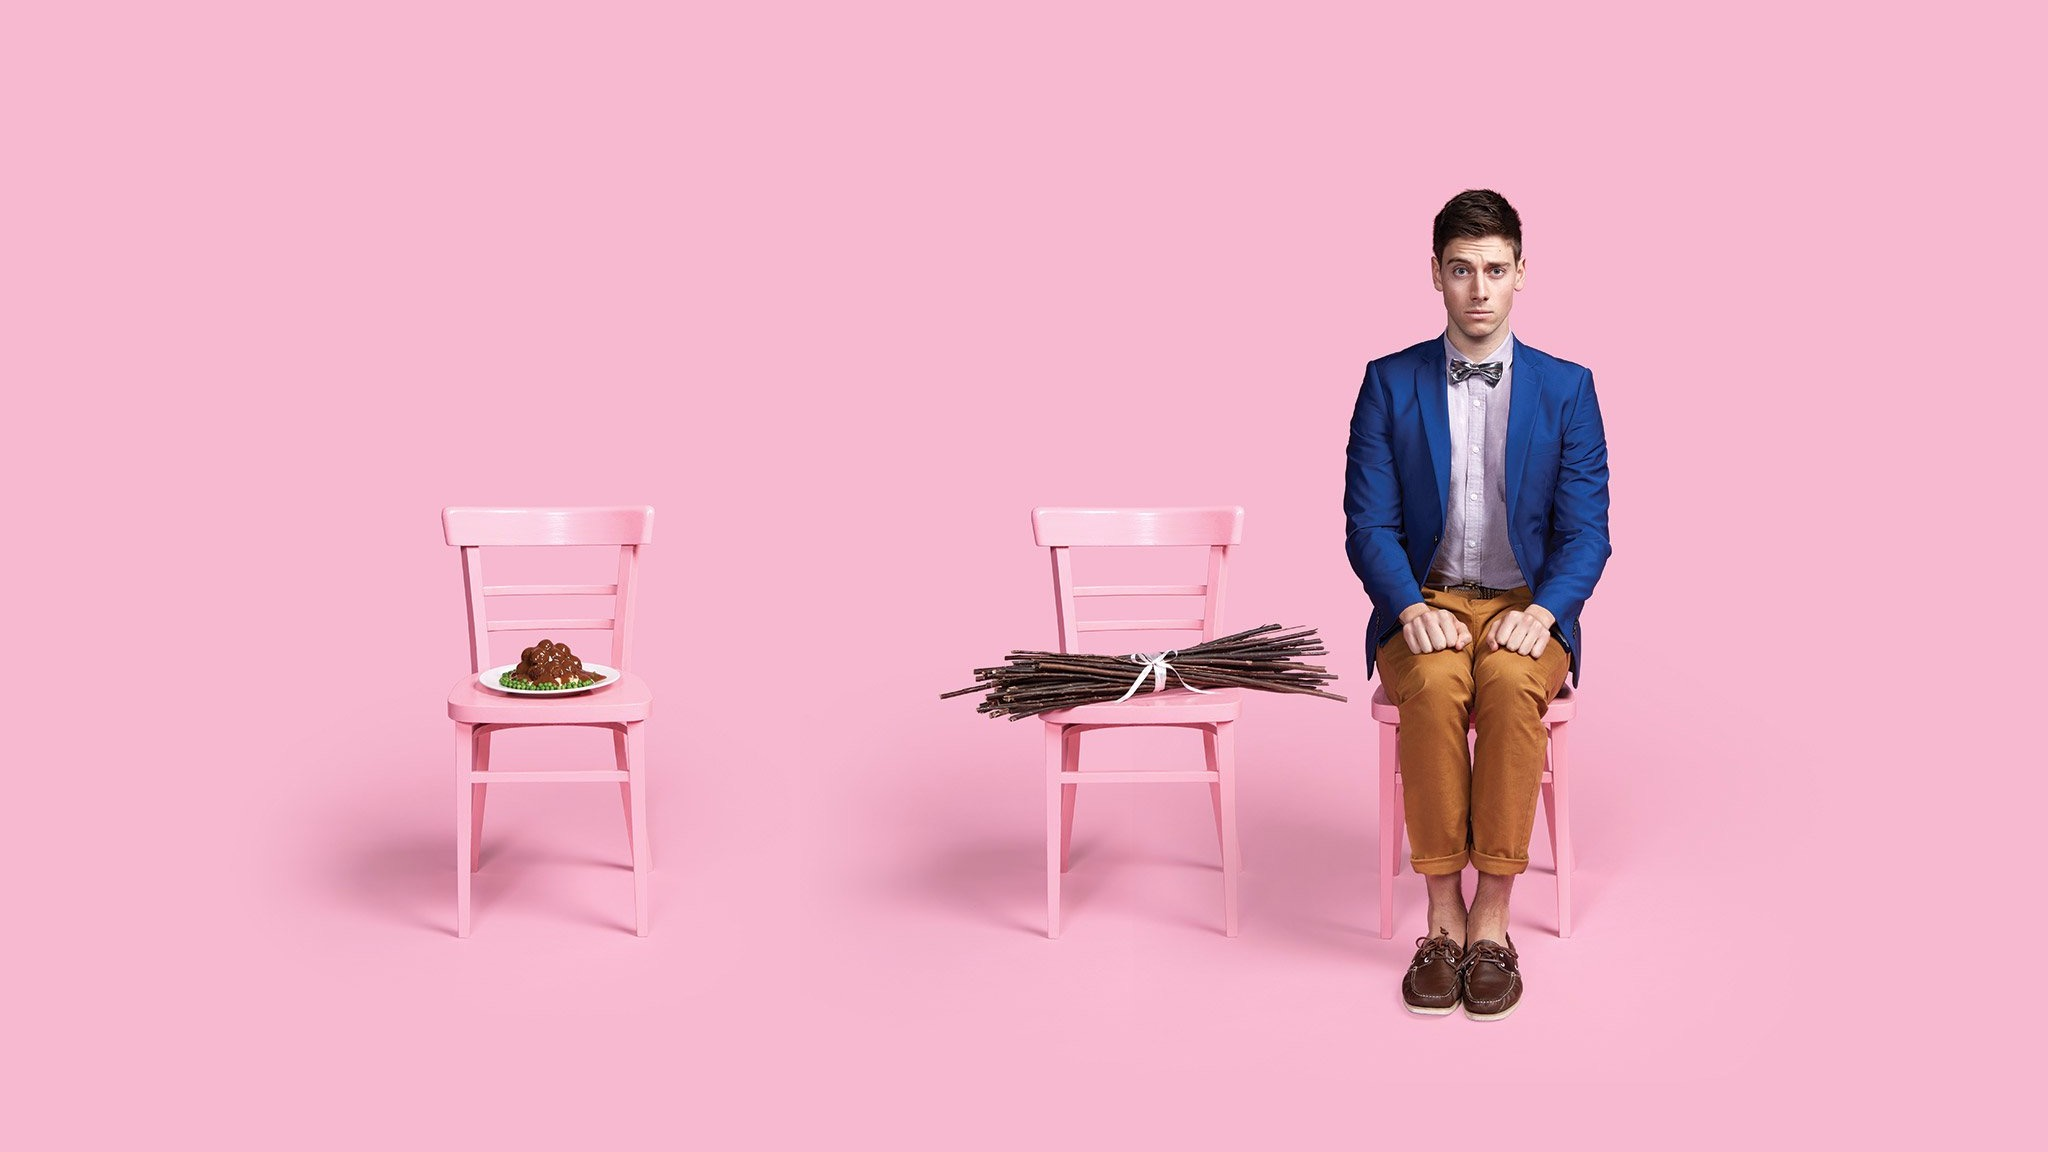 on 3 pink chairs against a pink background sits Irish faggots, a faggot of sticks and a man